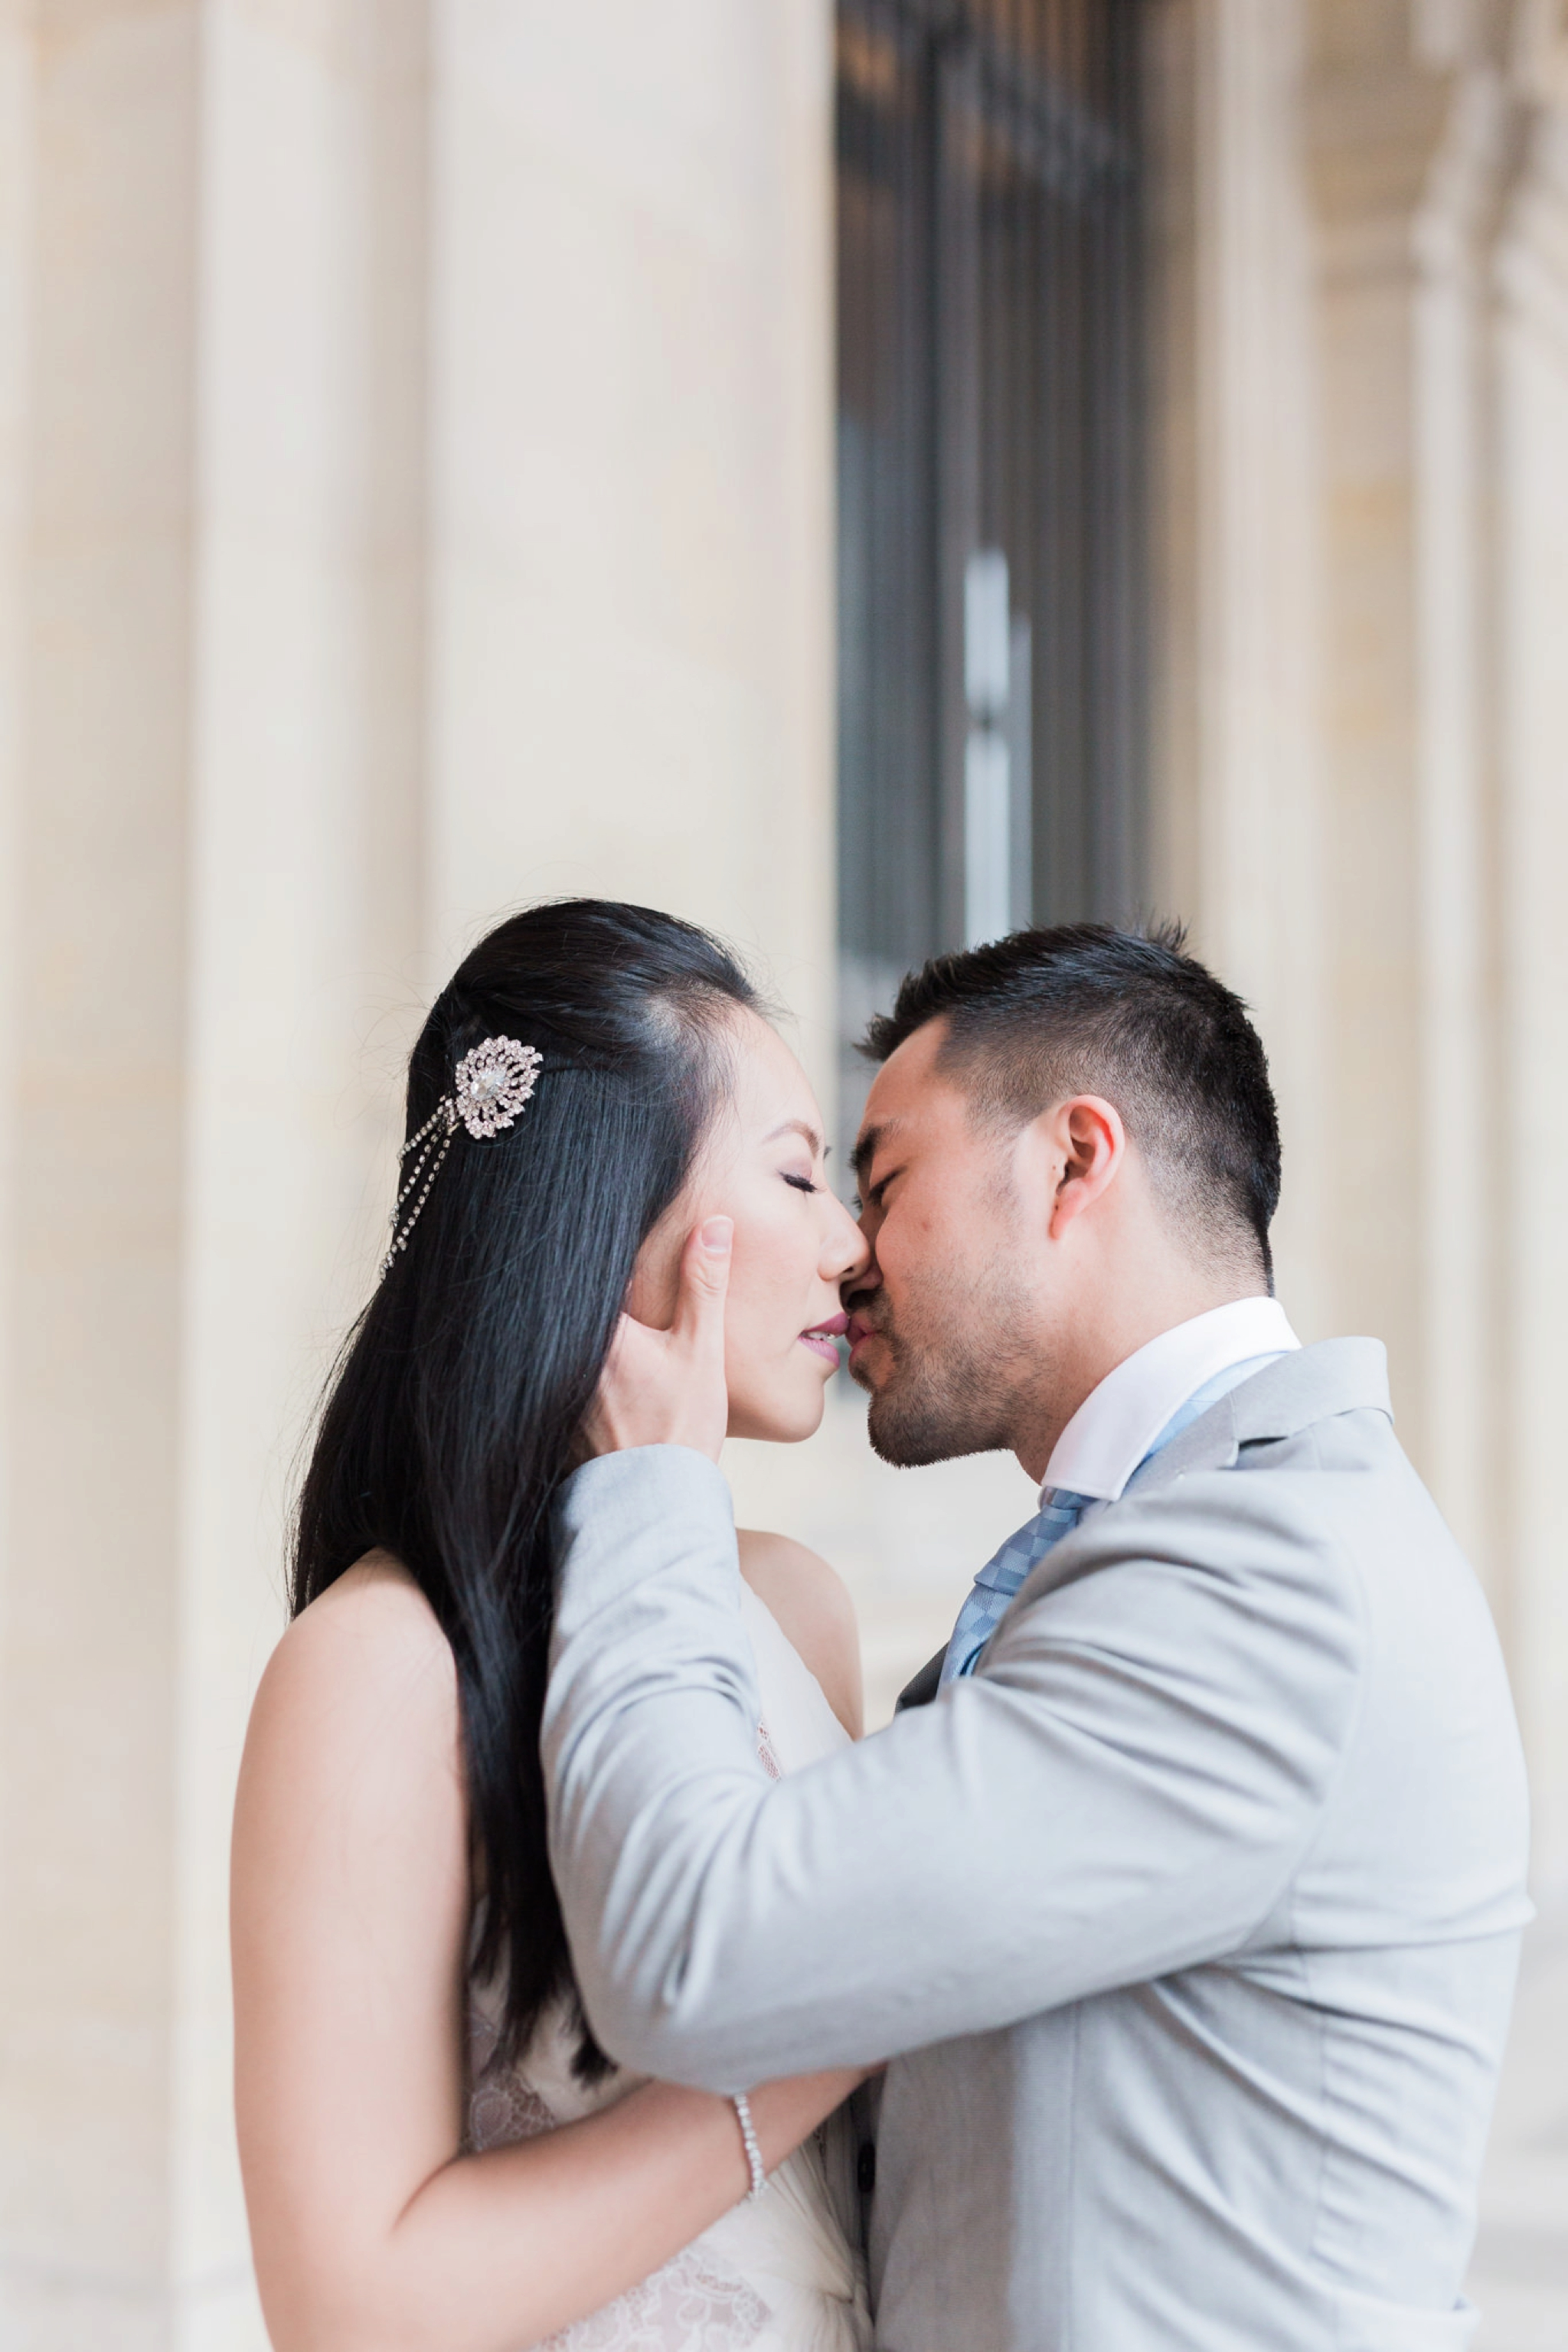 Suzanne_li_photography_paris_engagement_shoot_0005.jpg